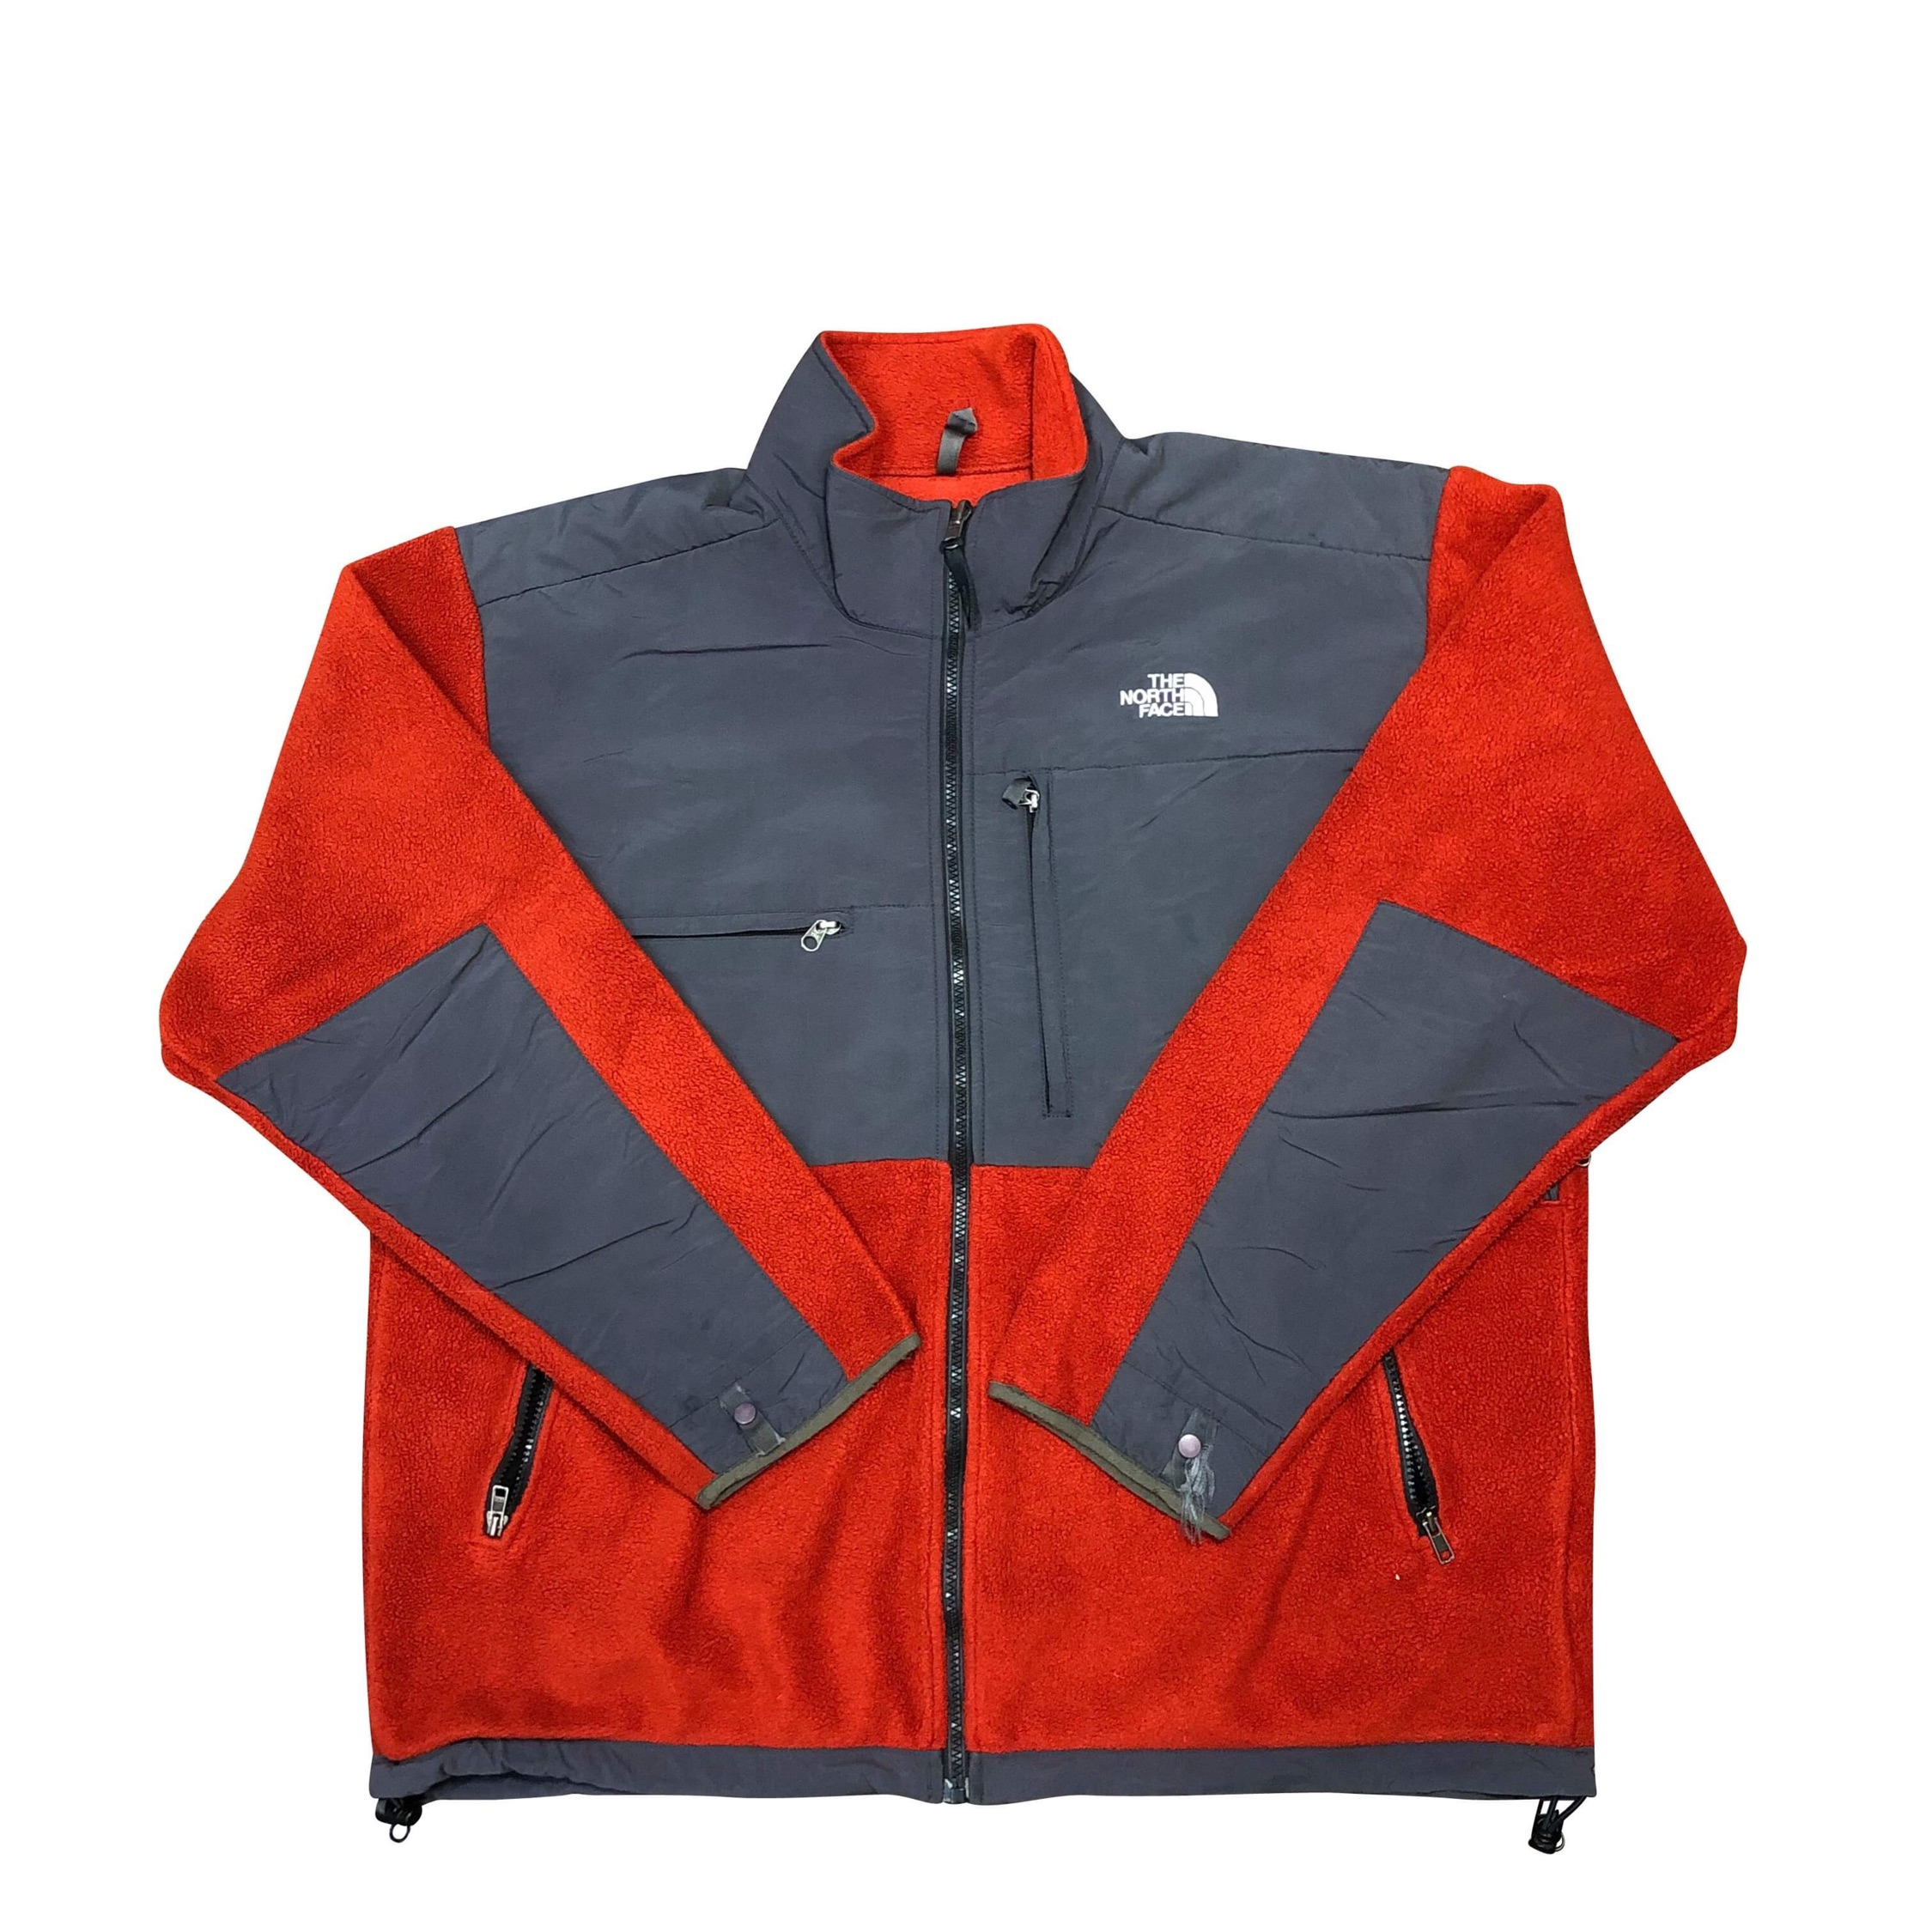 6ff551d5b Vintage The North Face Denali Jacket